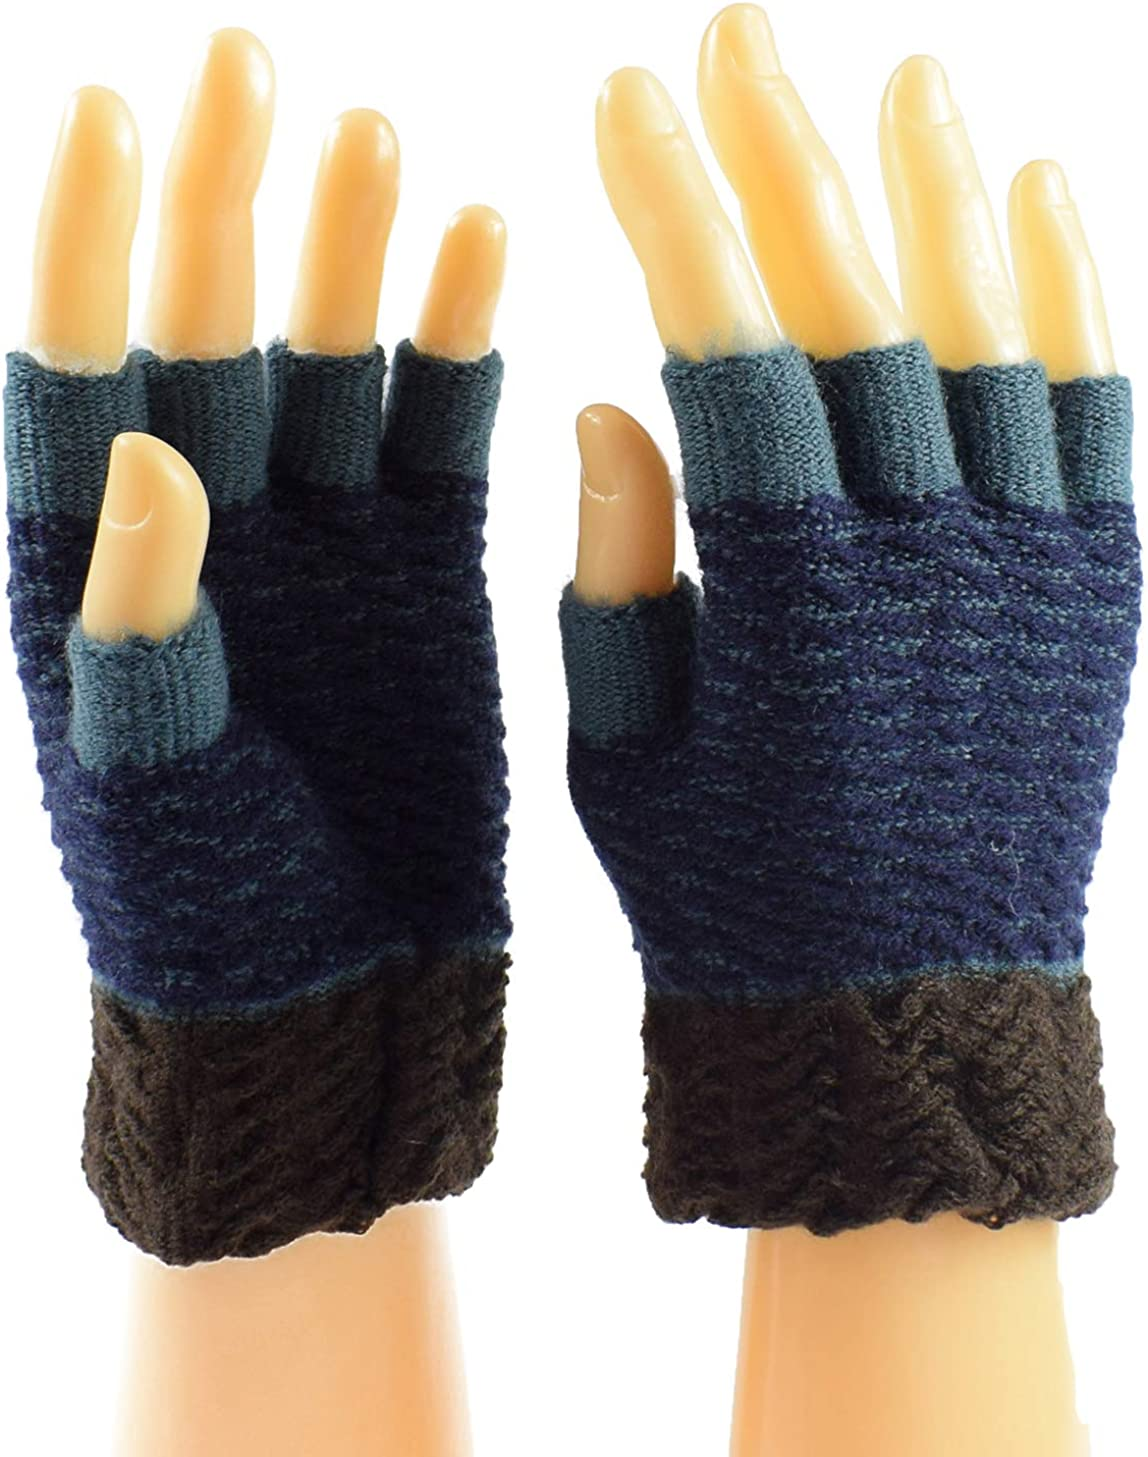 Knit Fingerless Work Gloves...